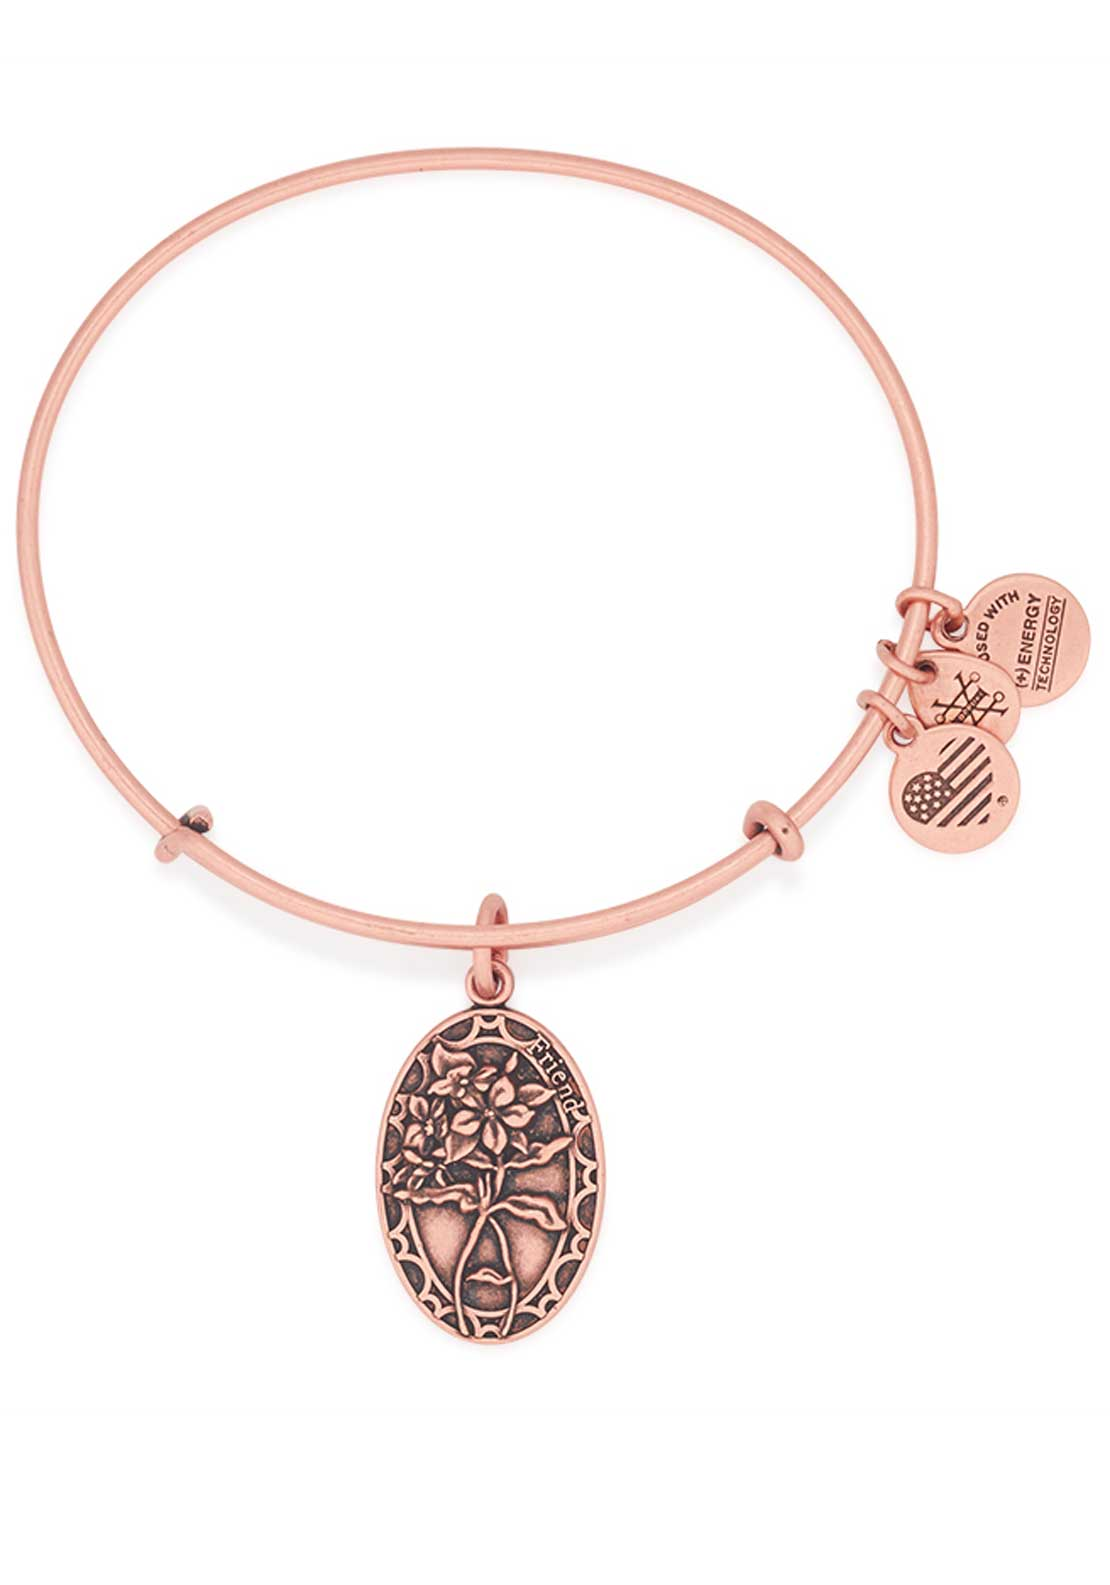 Alex and Ani Because I love you Friend Periwinkle Bracelet, Rose